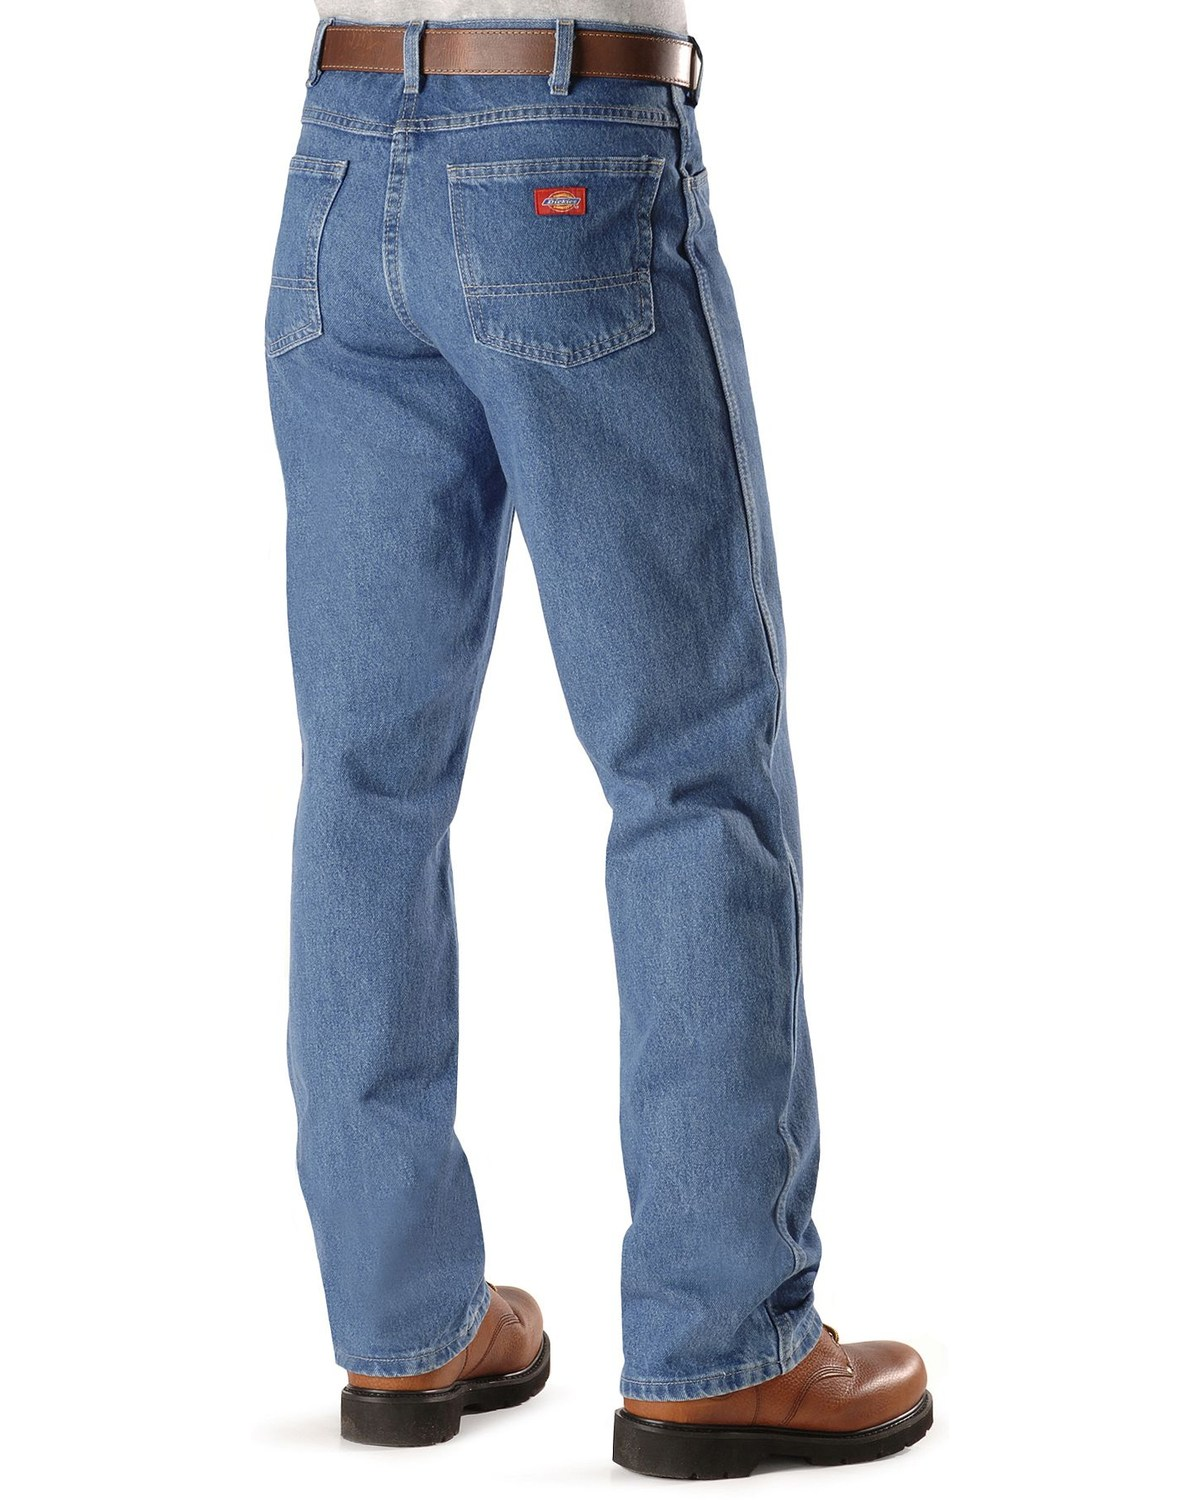 d51999f7 Zoomed Image Dickies Work Jeans - Regular Fit, Stonewash, hi-res. Zoomed  Image ...